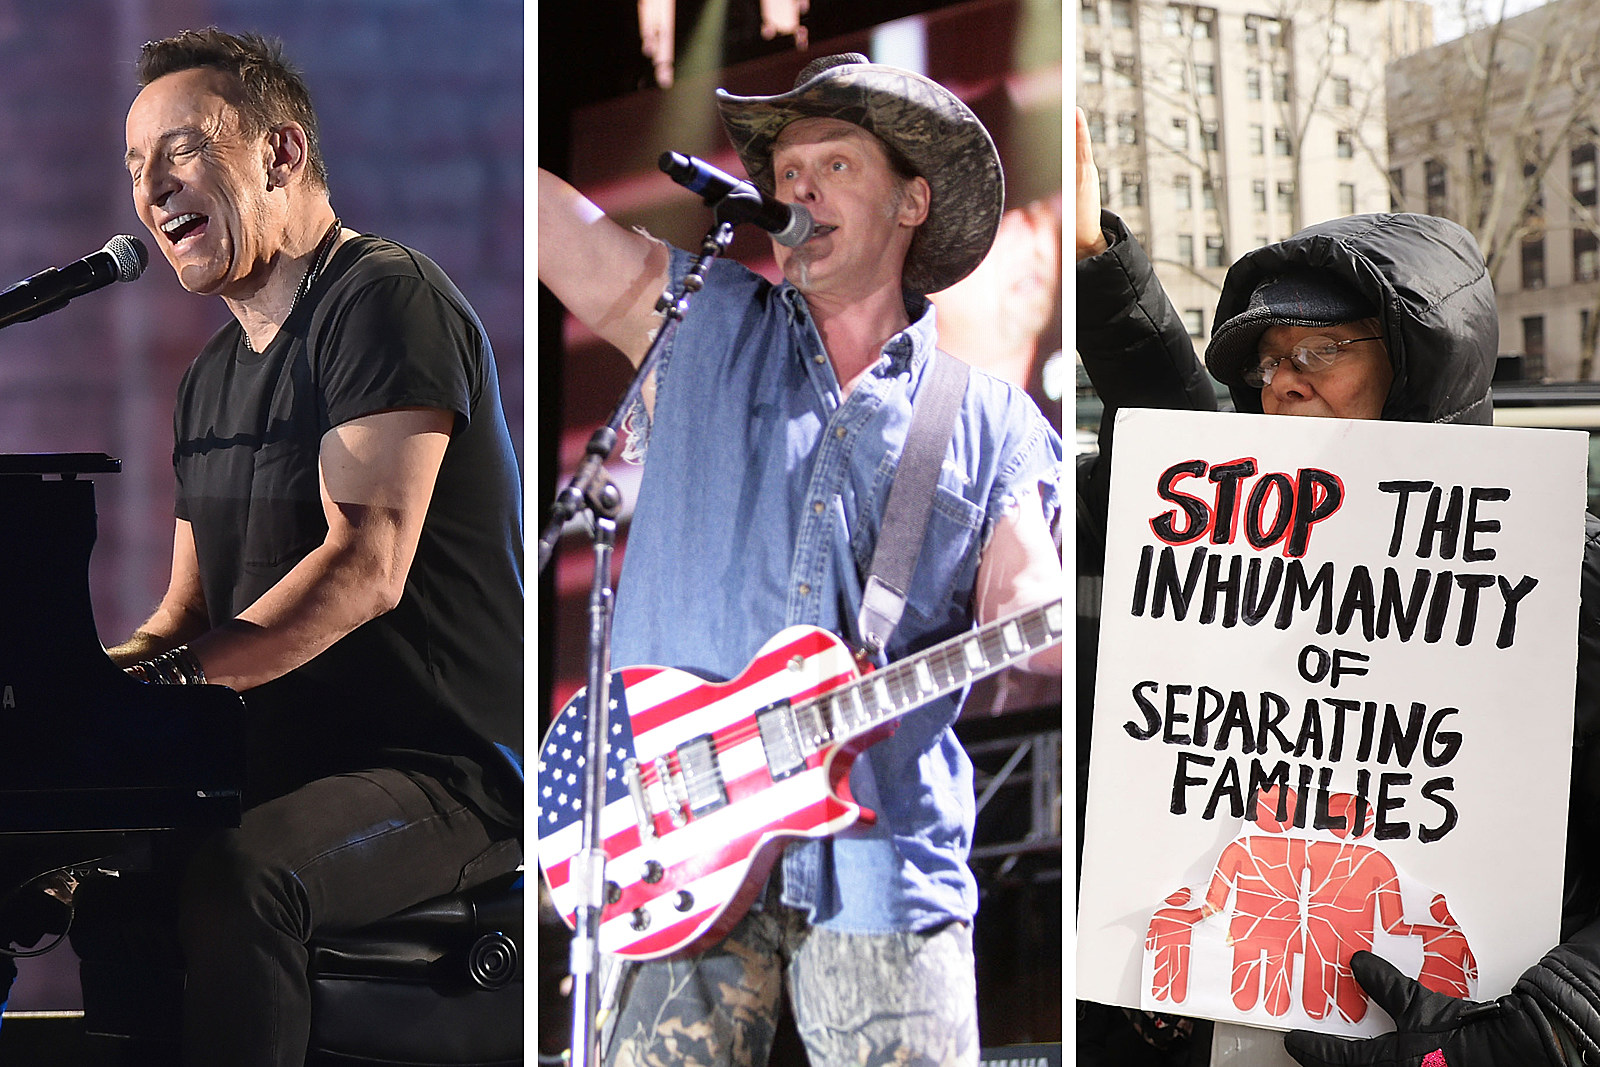 Bruce Springsteen, Ted Nugent Weigh in on Immigration Debate